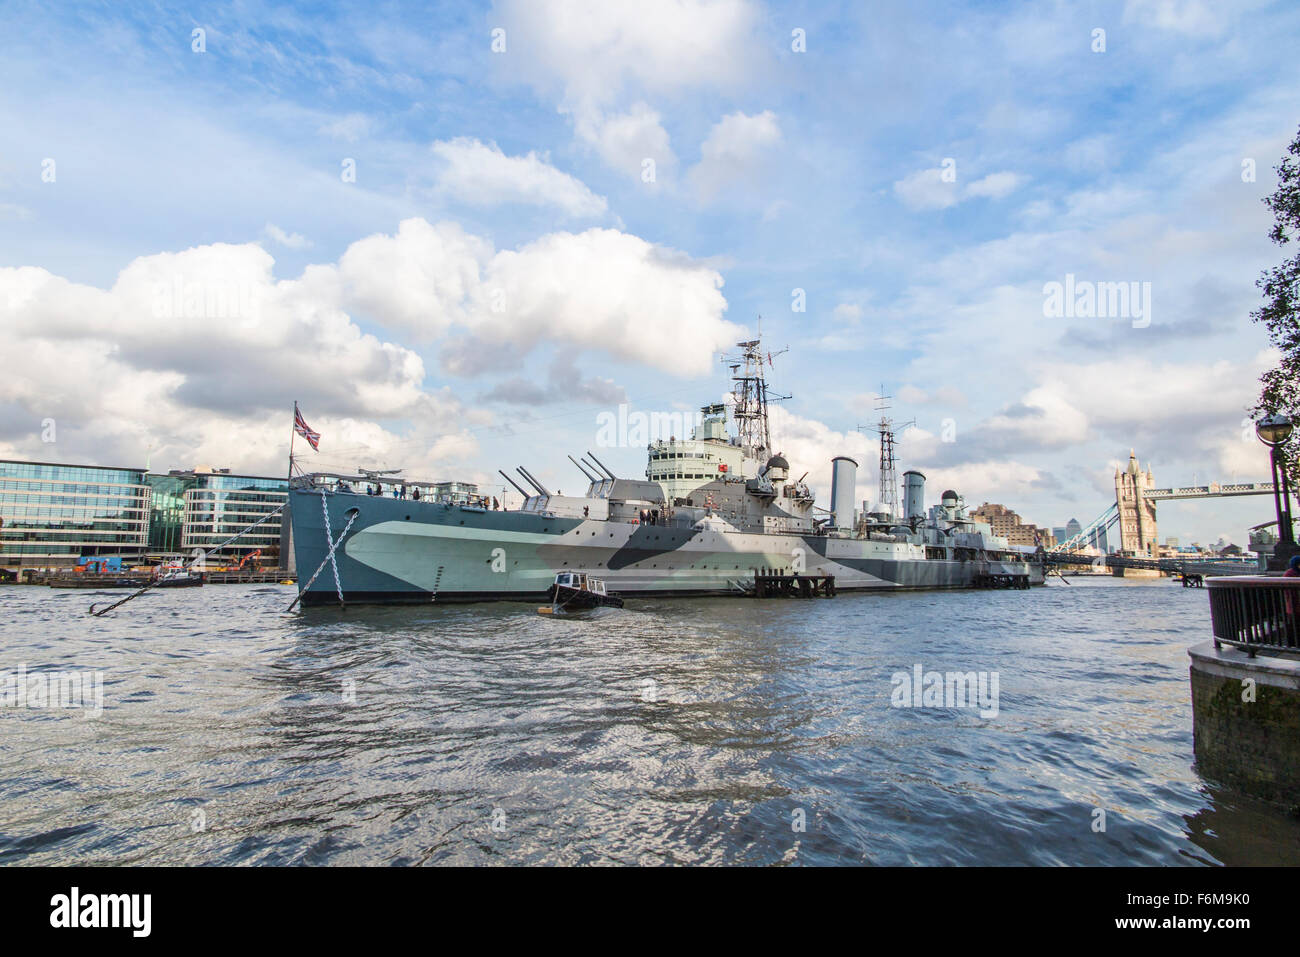 The iconic HMS Belfast light cruiser, a popular museum and tourist attraction, moored on the River Thames in the - Stock Image